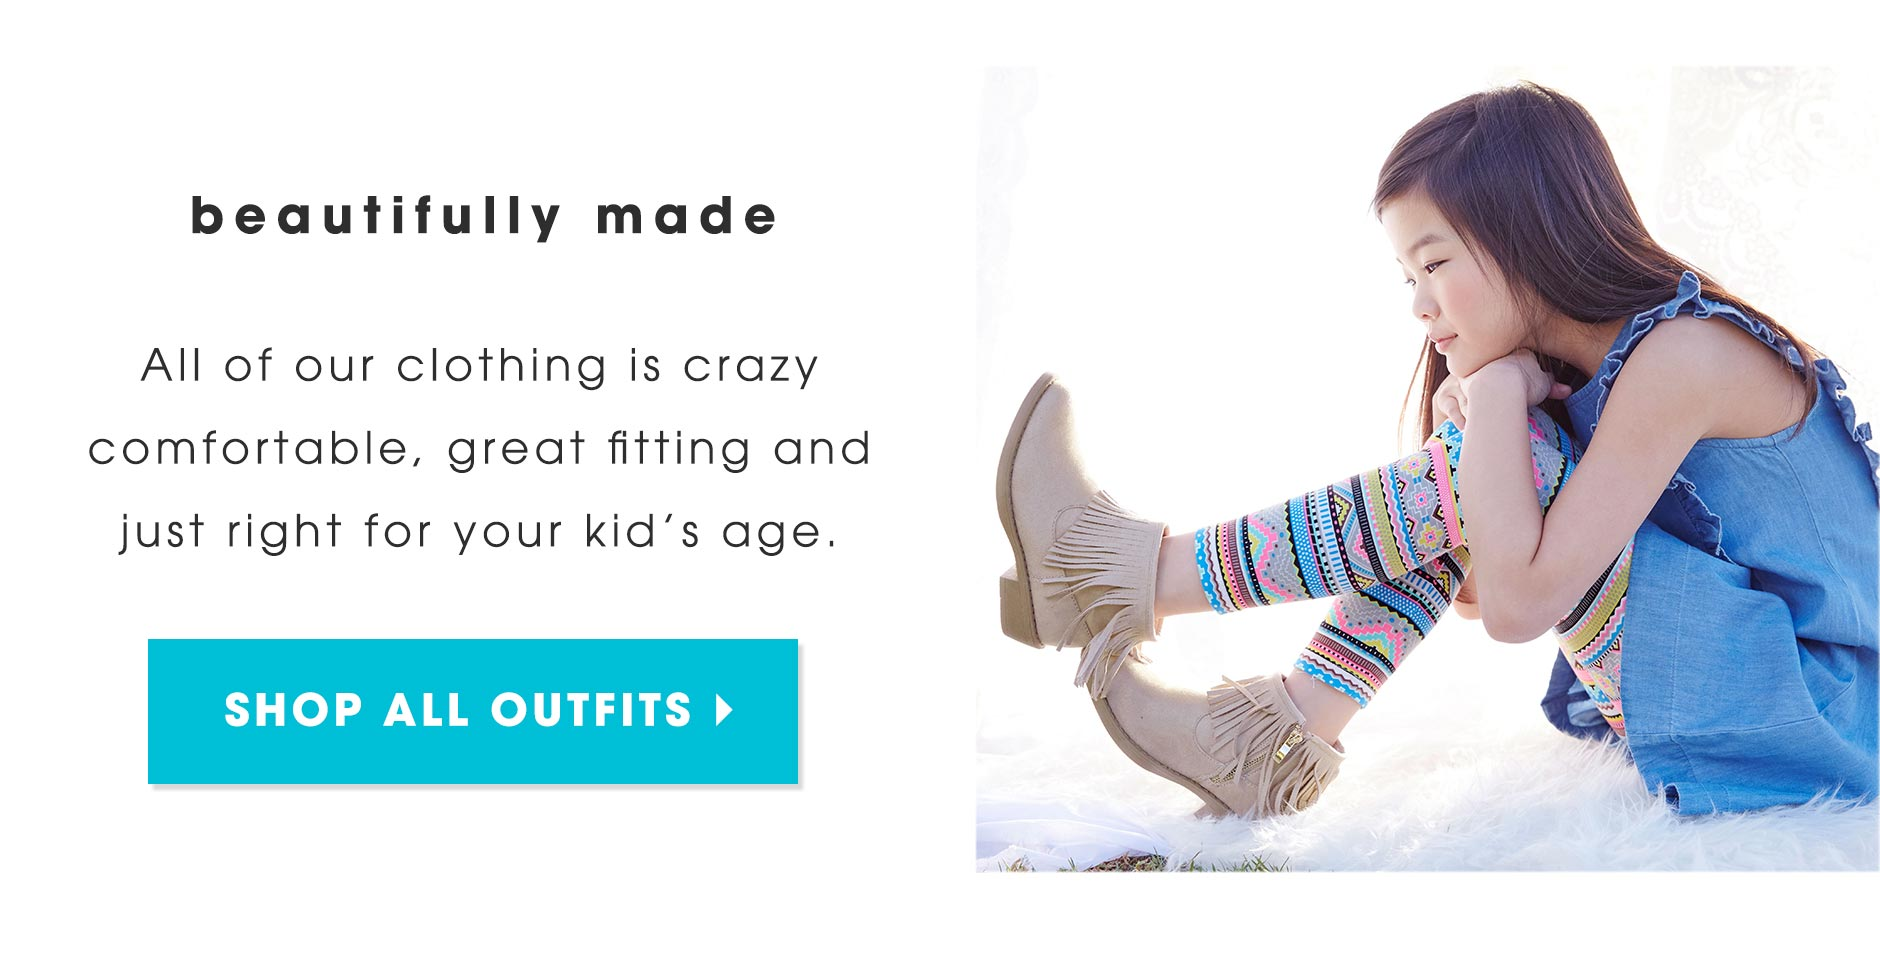 Beautifully made! All of our clothing is crazy comfortable, great fitting and just right for your kid's age.